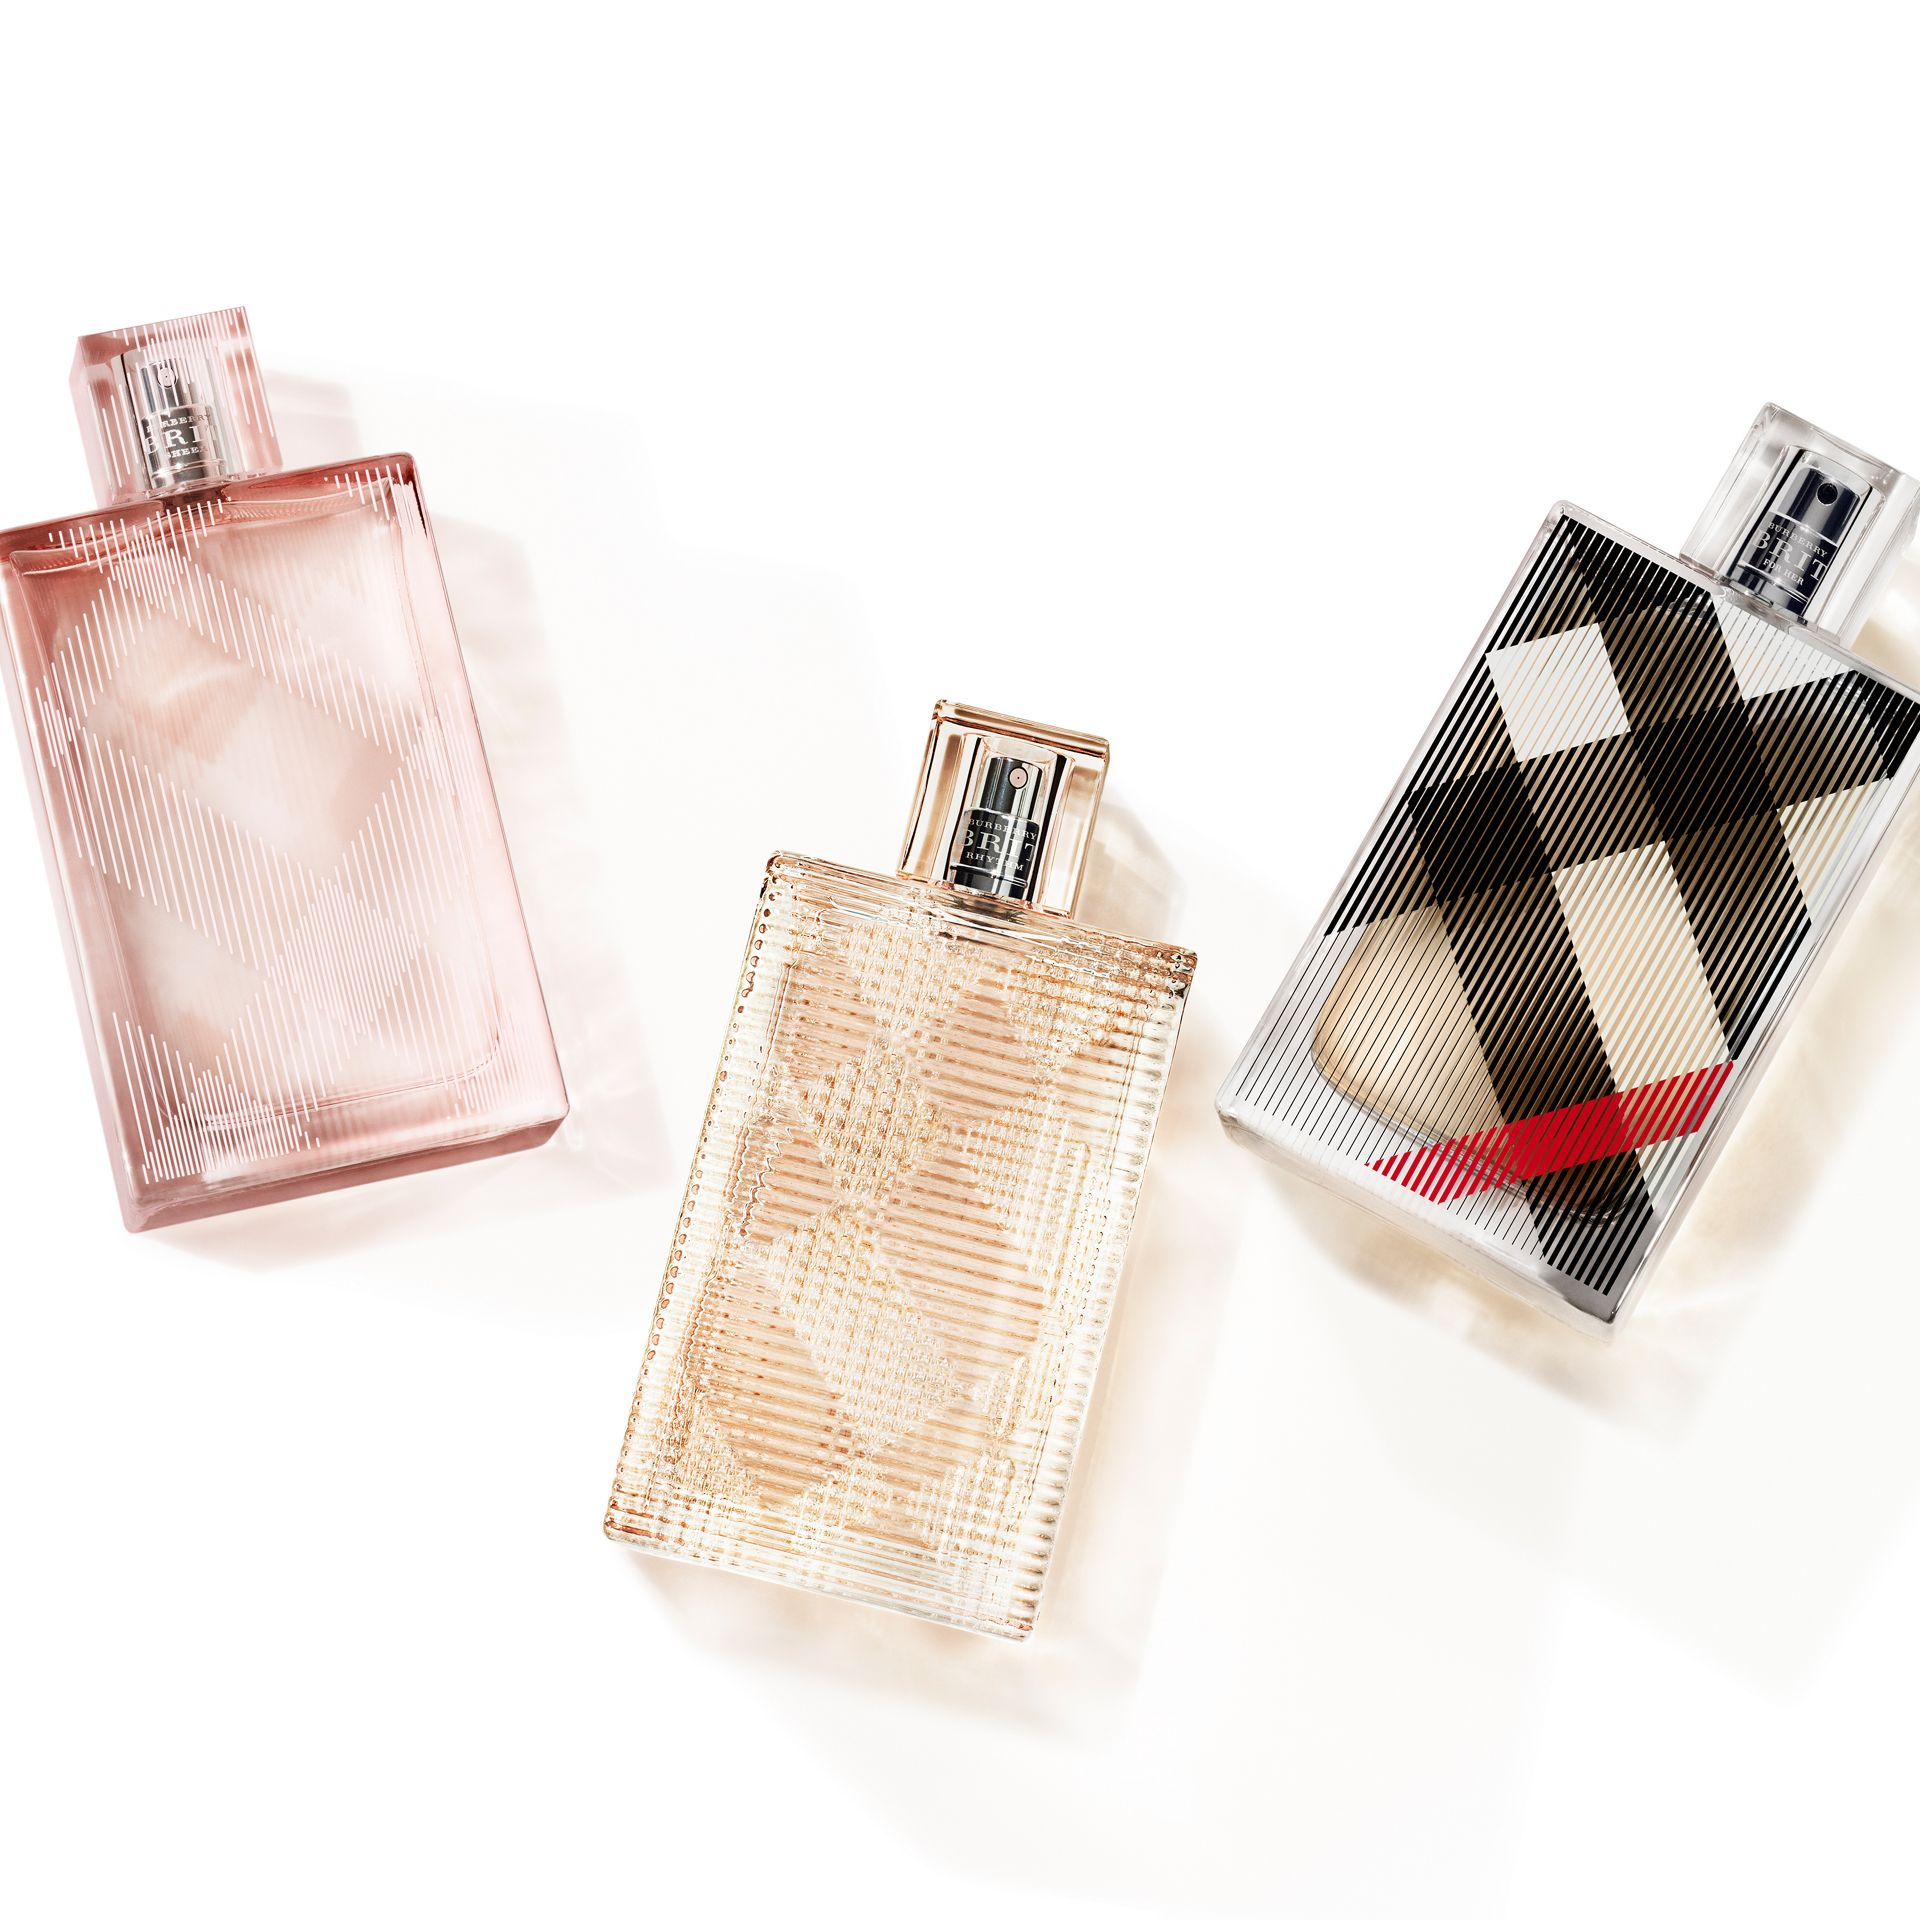 Eau de Parfum Burberry Brit For Her 30 ml - Femme | Burberry - photo de la galerie 3